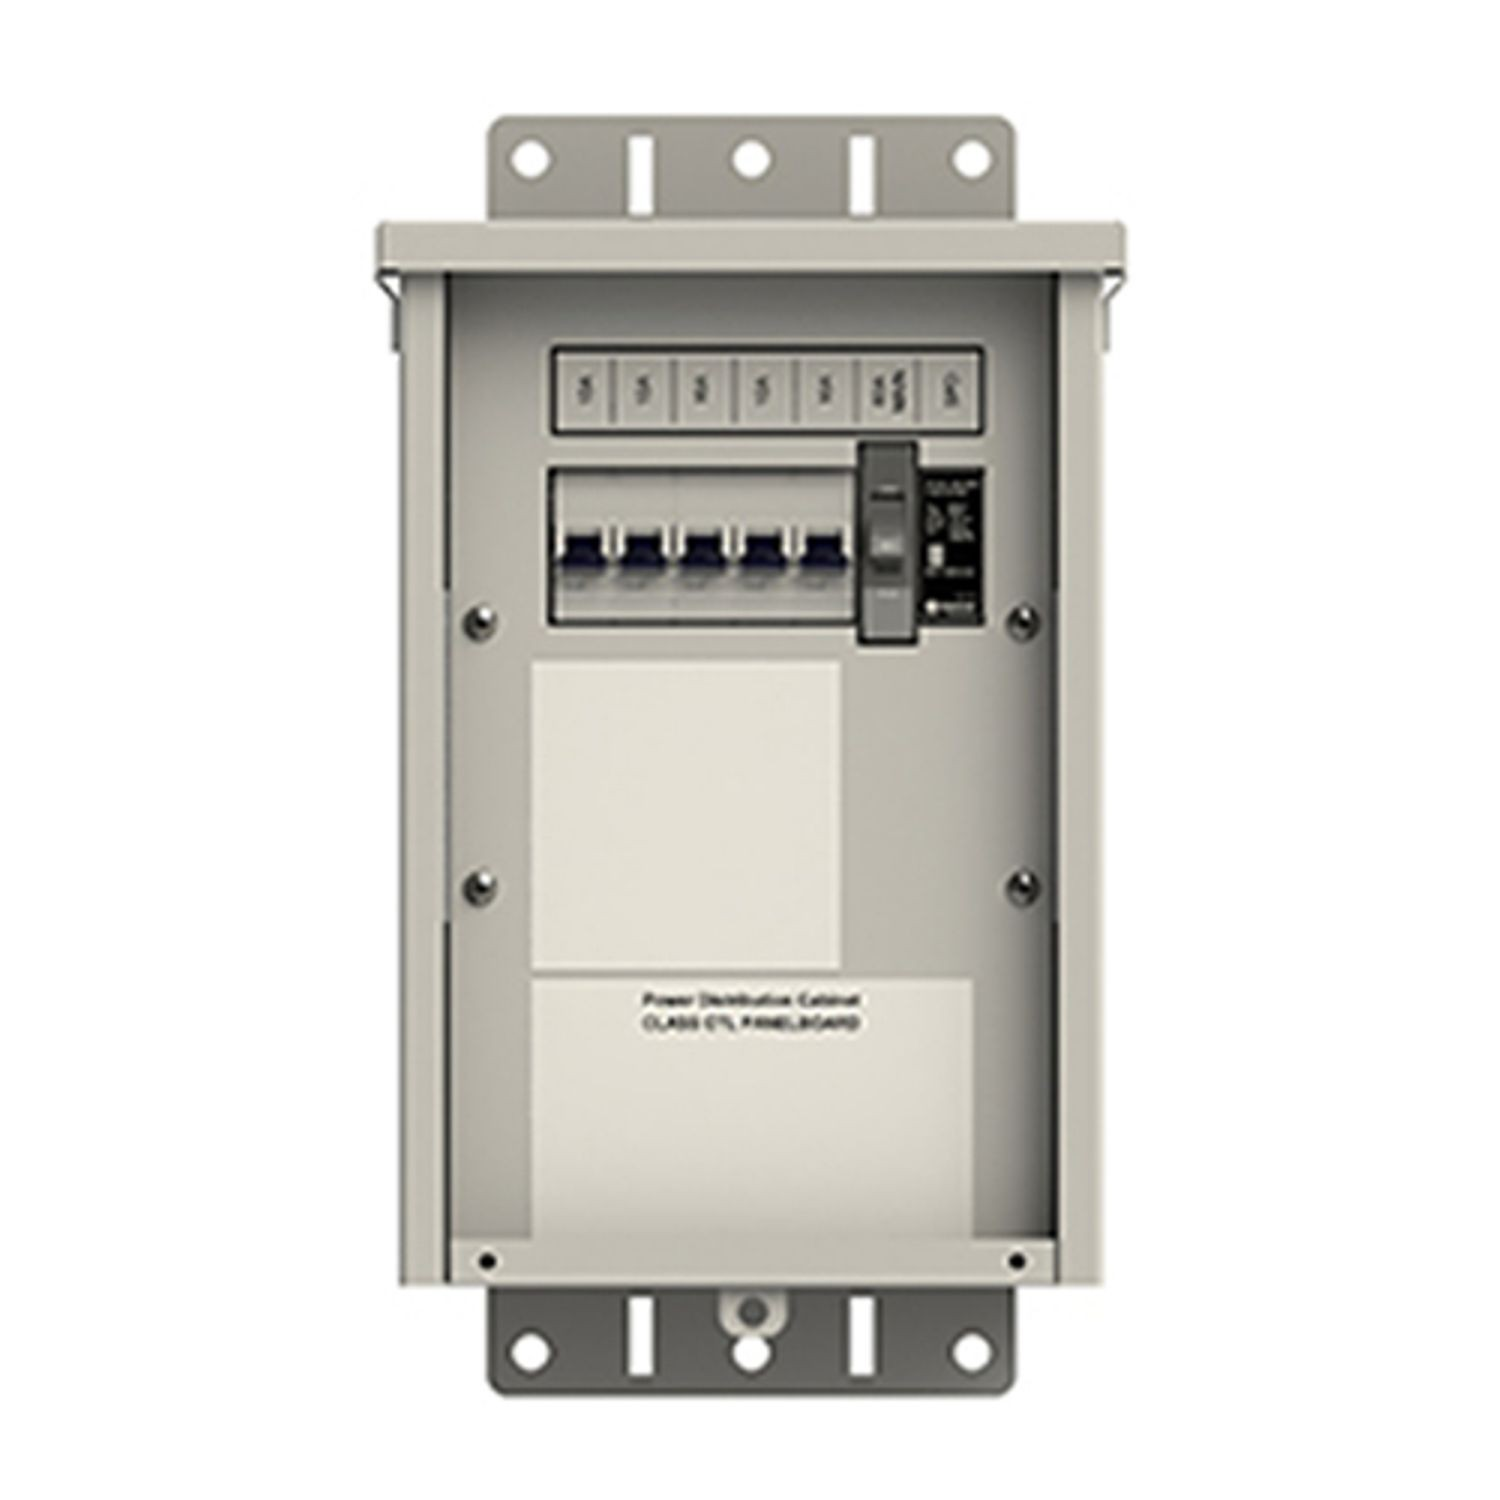 Electrical Cabinet SMALL CELL Outdoor Single-phase 120 Vac 60A Main 5x 10A Branches UL 67 Service Entrance MOV